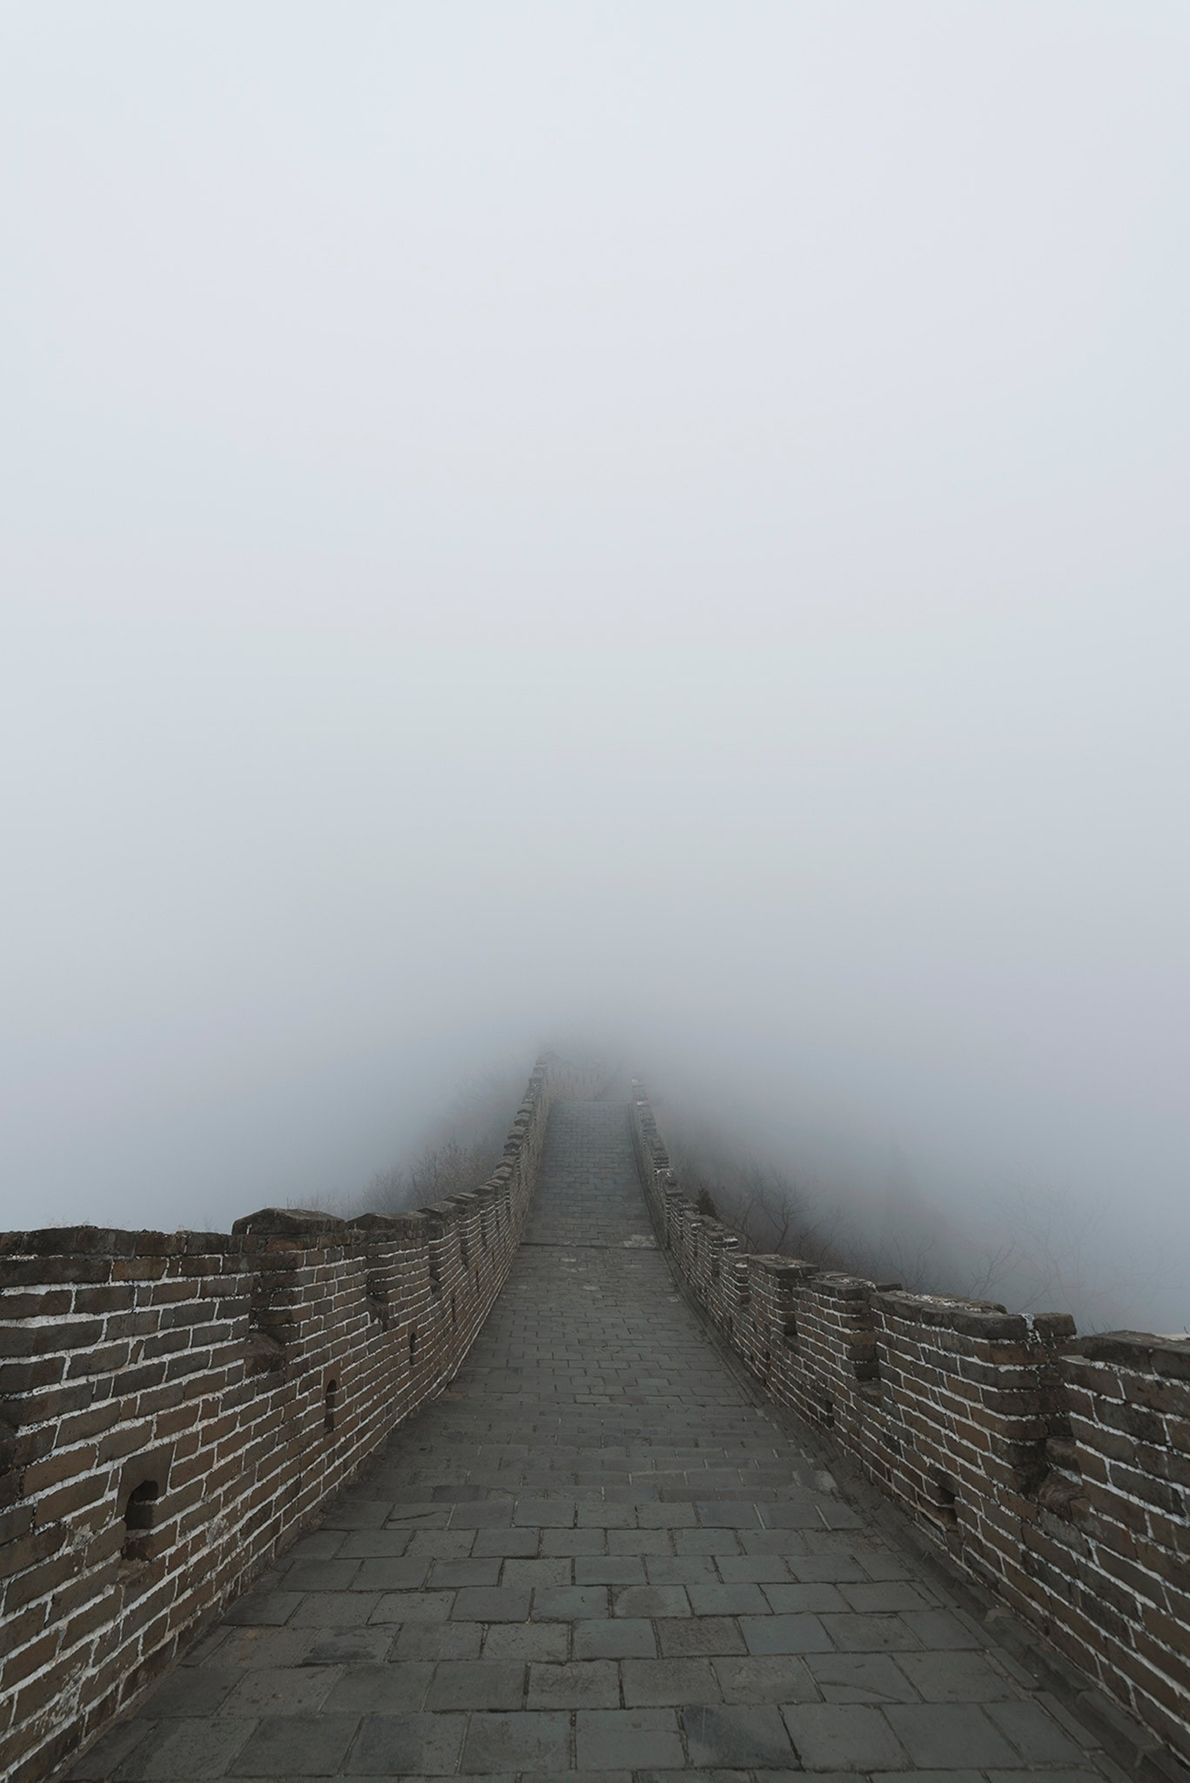 Somewhere at The Great Wall, China. February 2018. Your best photos and memories of a trip ...